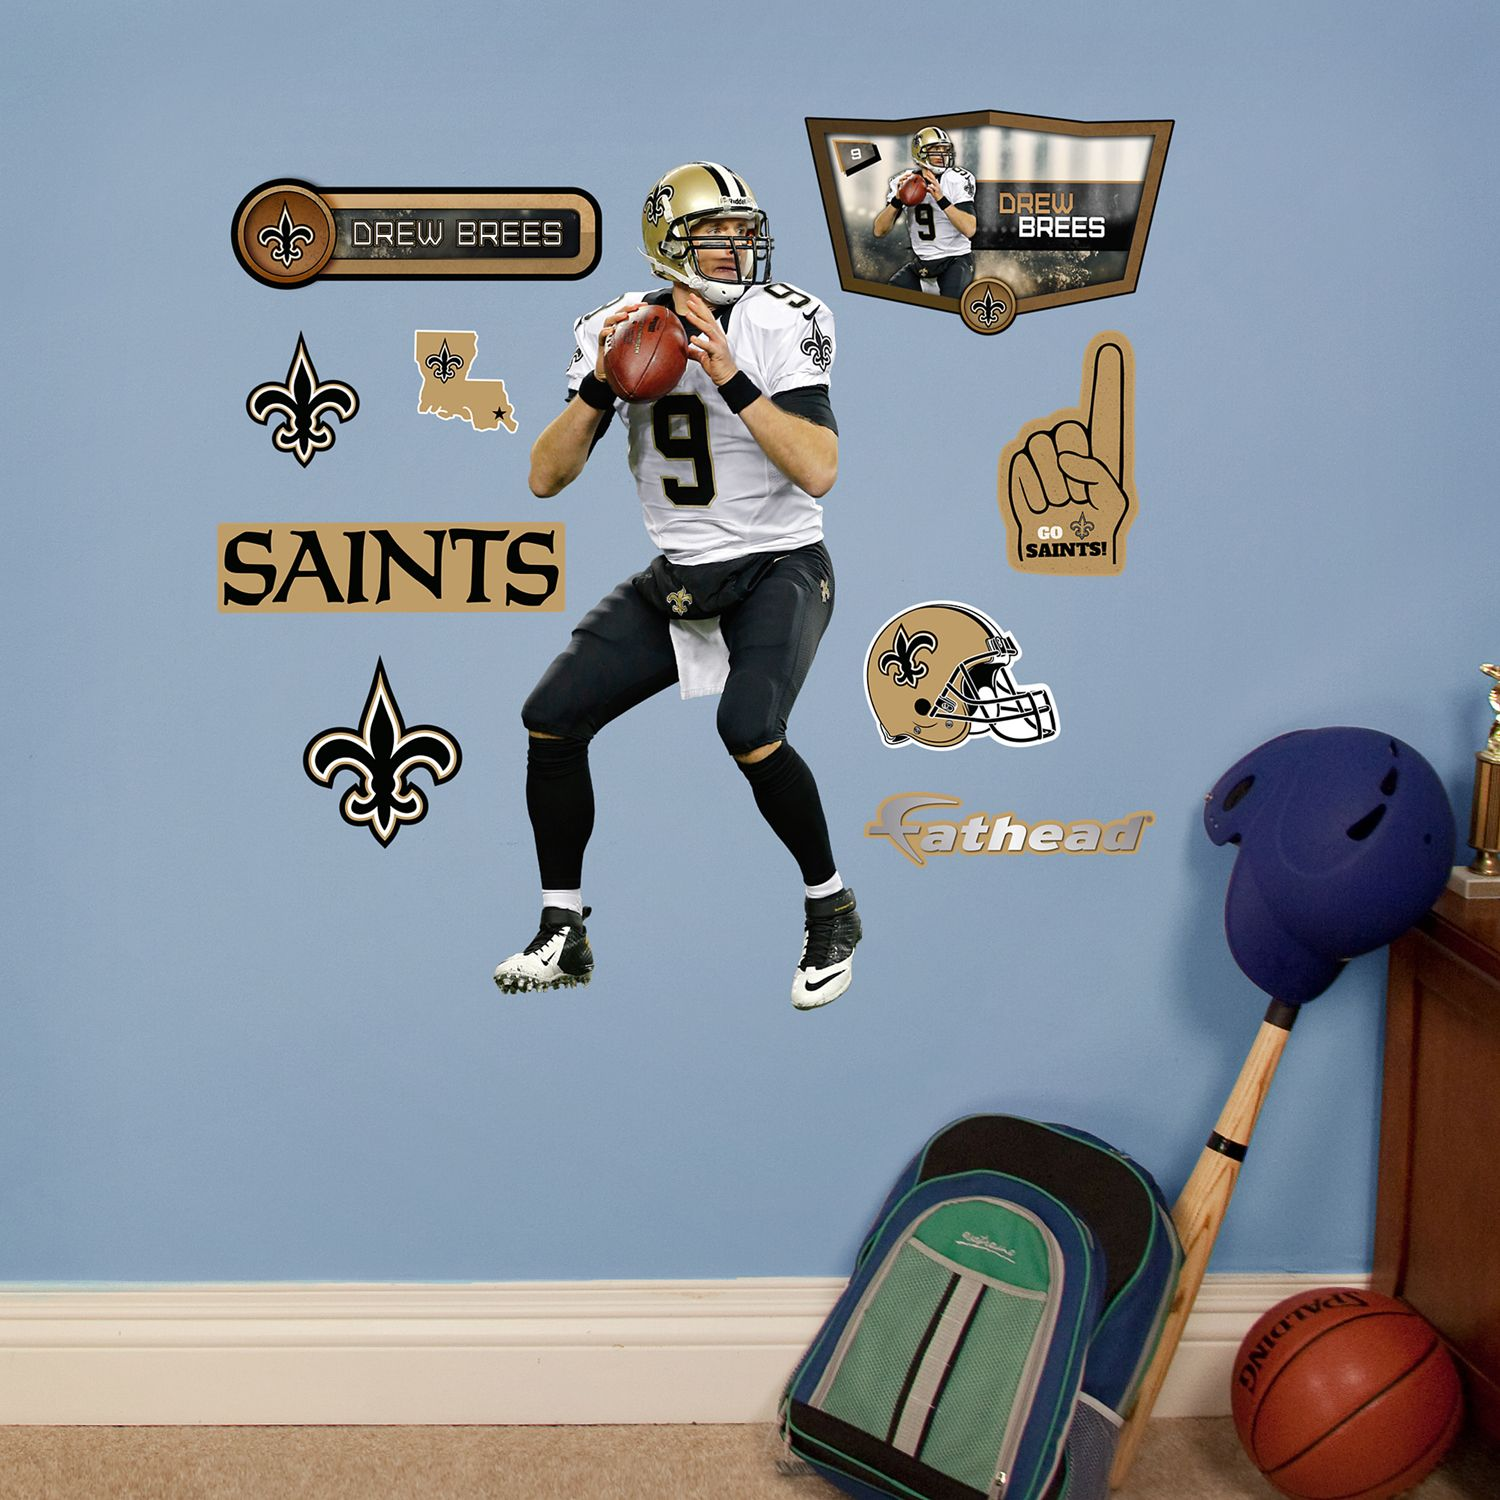 & New Orleans Saints Drew Brees Wall Decals by Fathead Jr.